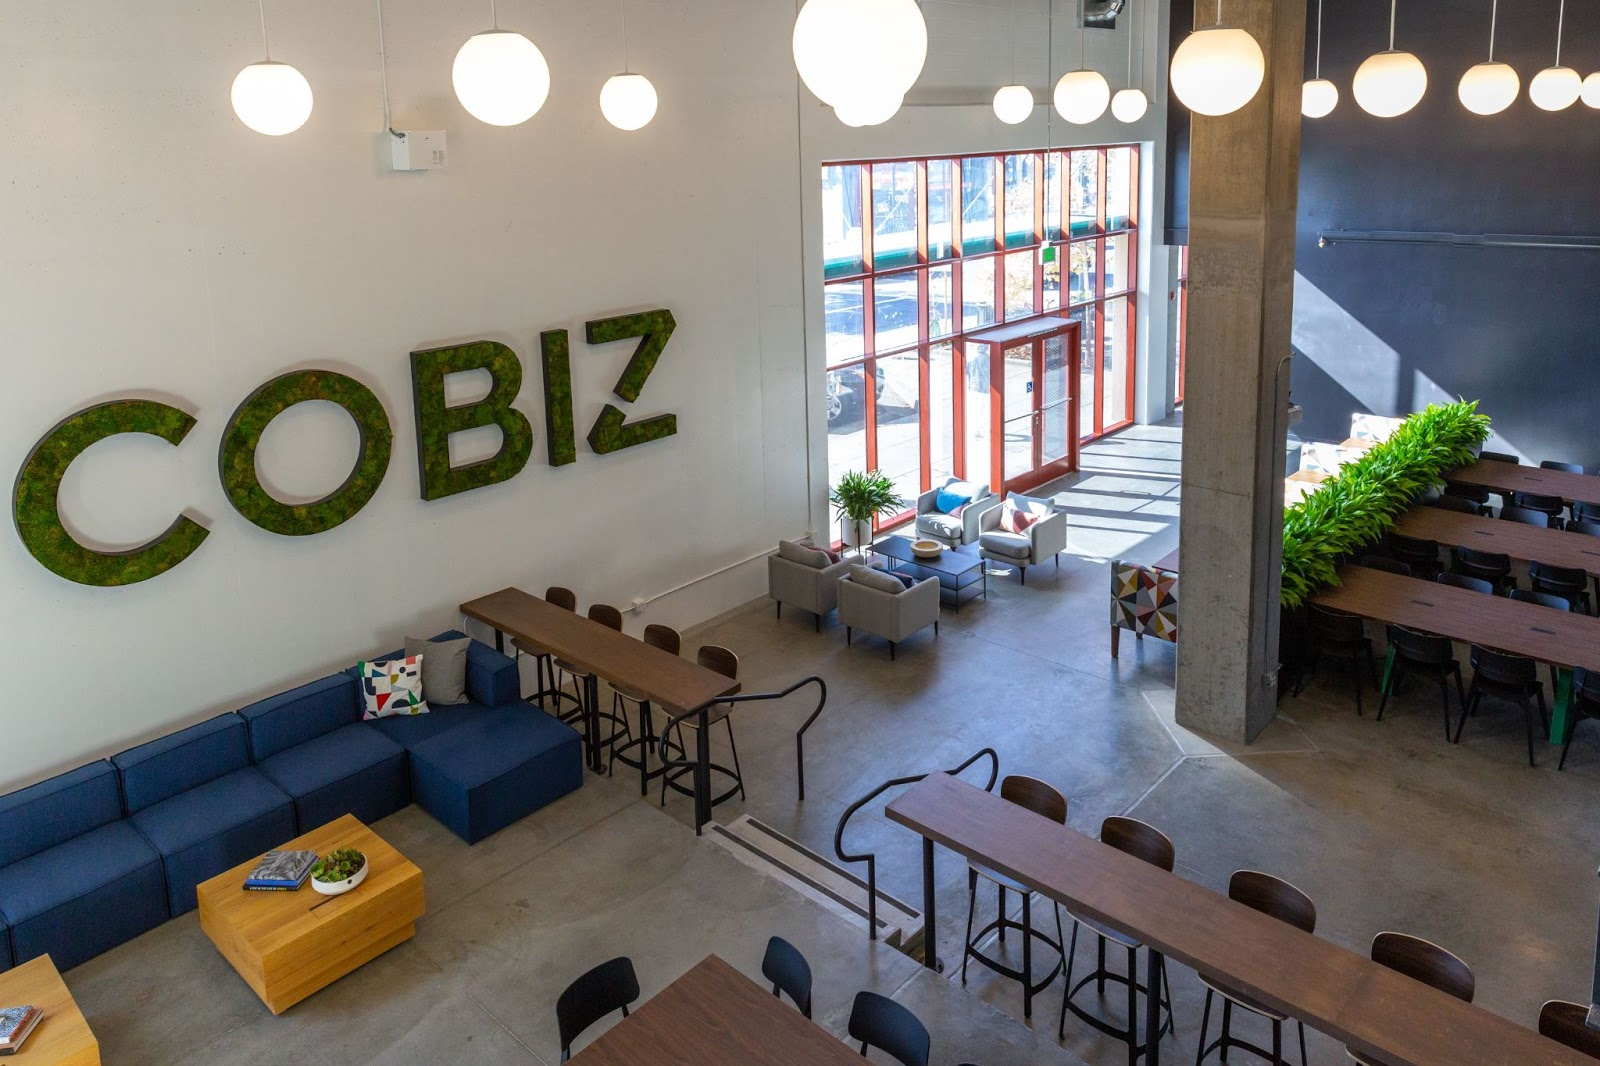 cobiz view from above modern lighting greenery sign colorful seating